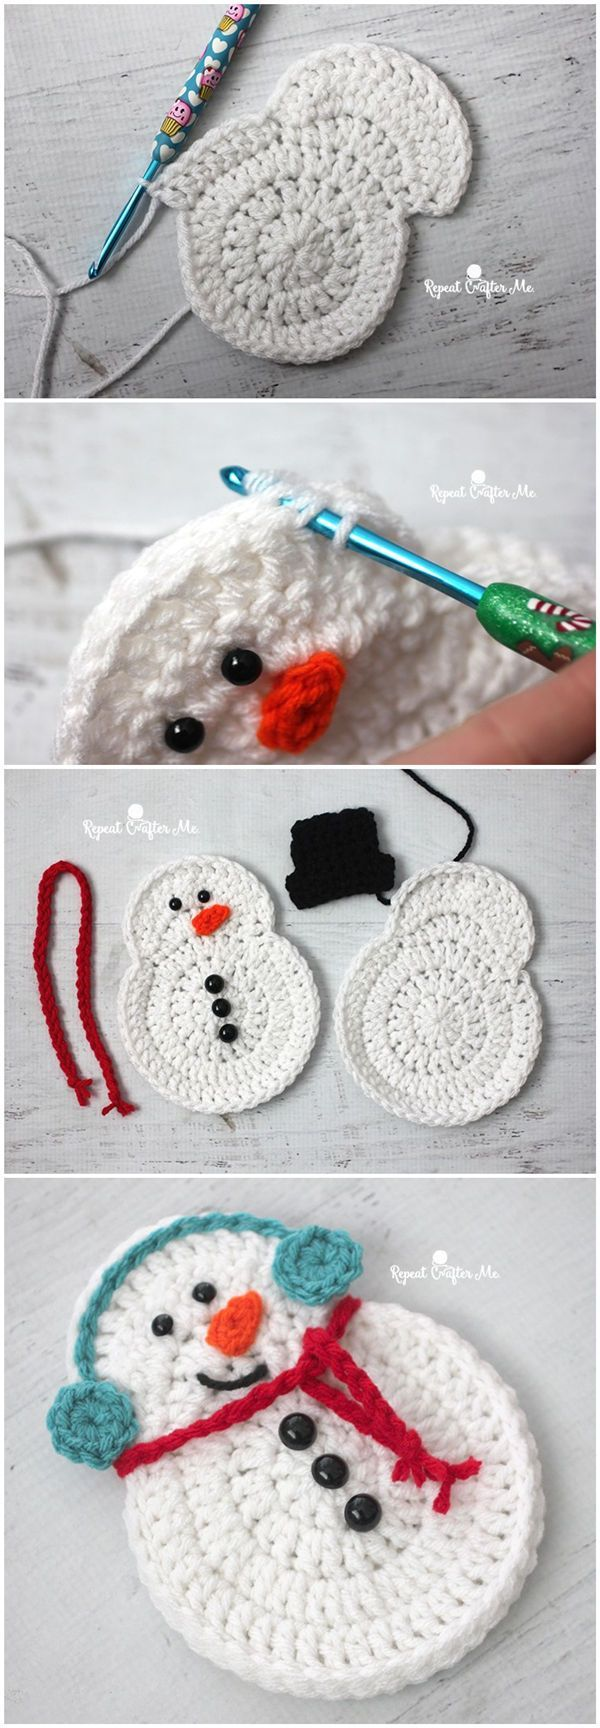 About a week ago we shared with you a great tutorial for the ...